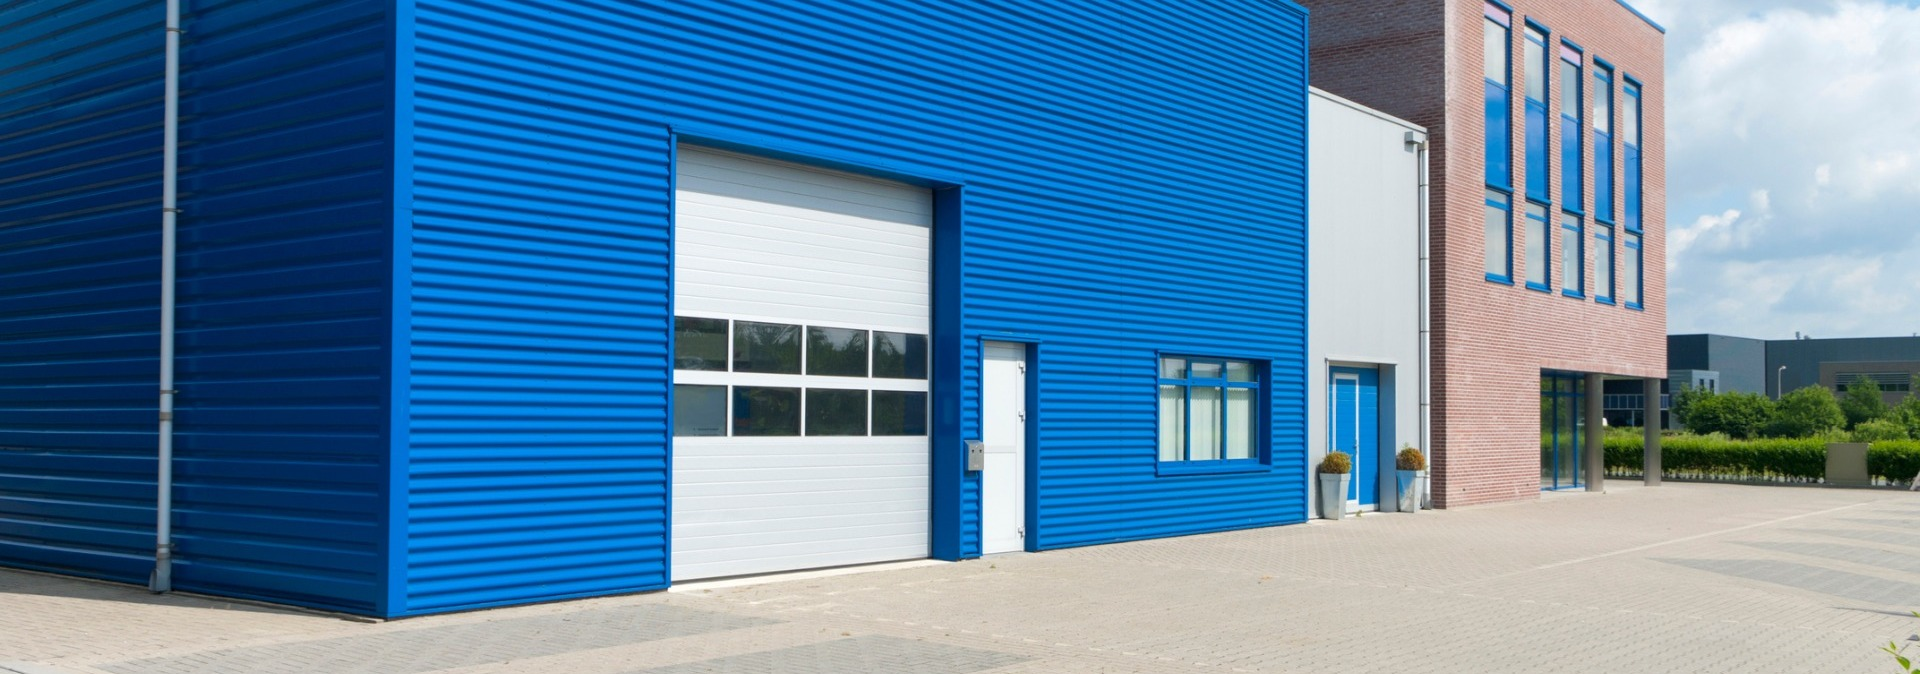 Blue metal sheet building that has a white industrial sectional door with 2 rows of 4 glass pane windows featured on door. Entrance door one foot away